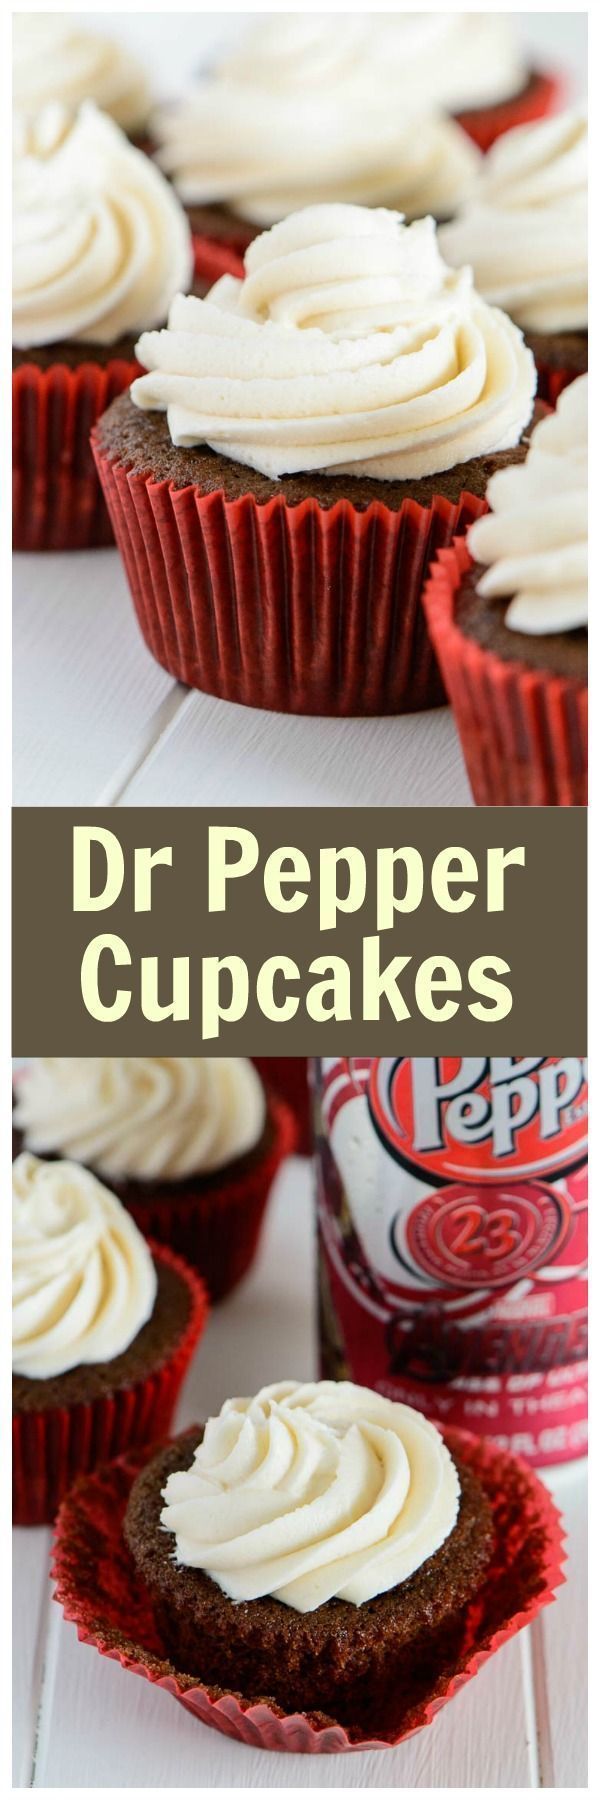 Fluffy and moist, these dr pepper cupcakes are my absolute favorite. The brown butter frosting takes them to a whole new level! | http://bakedbyanintrovert.com